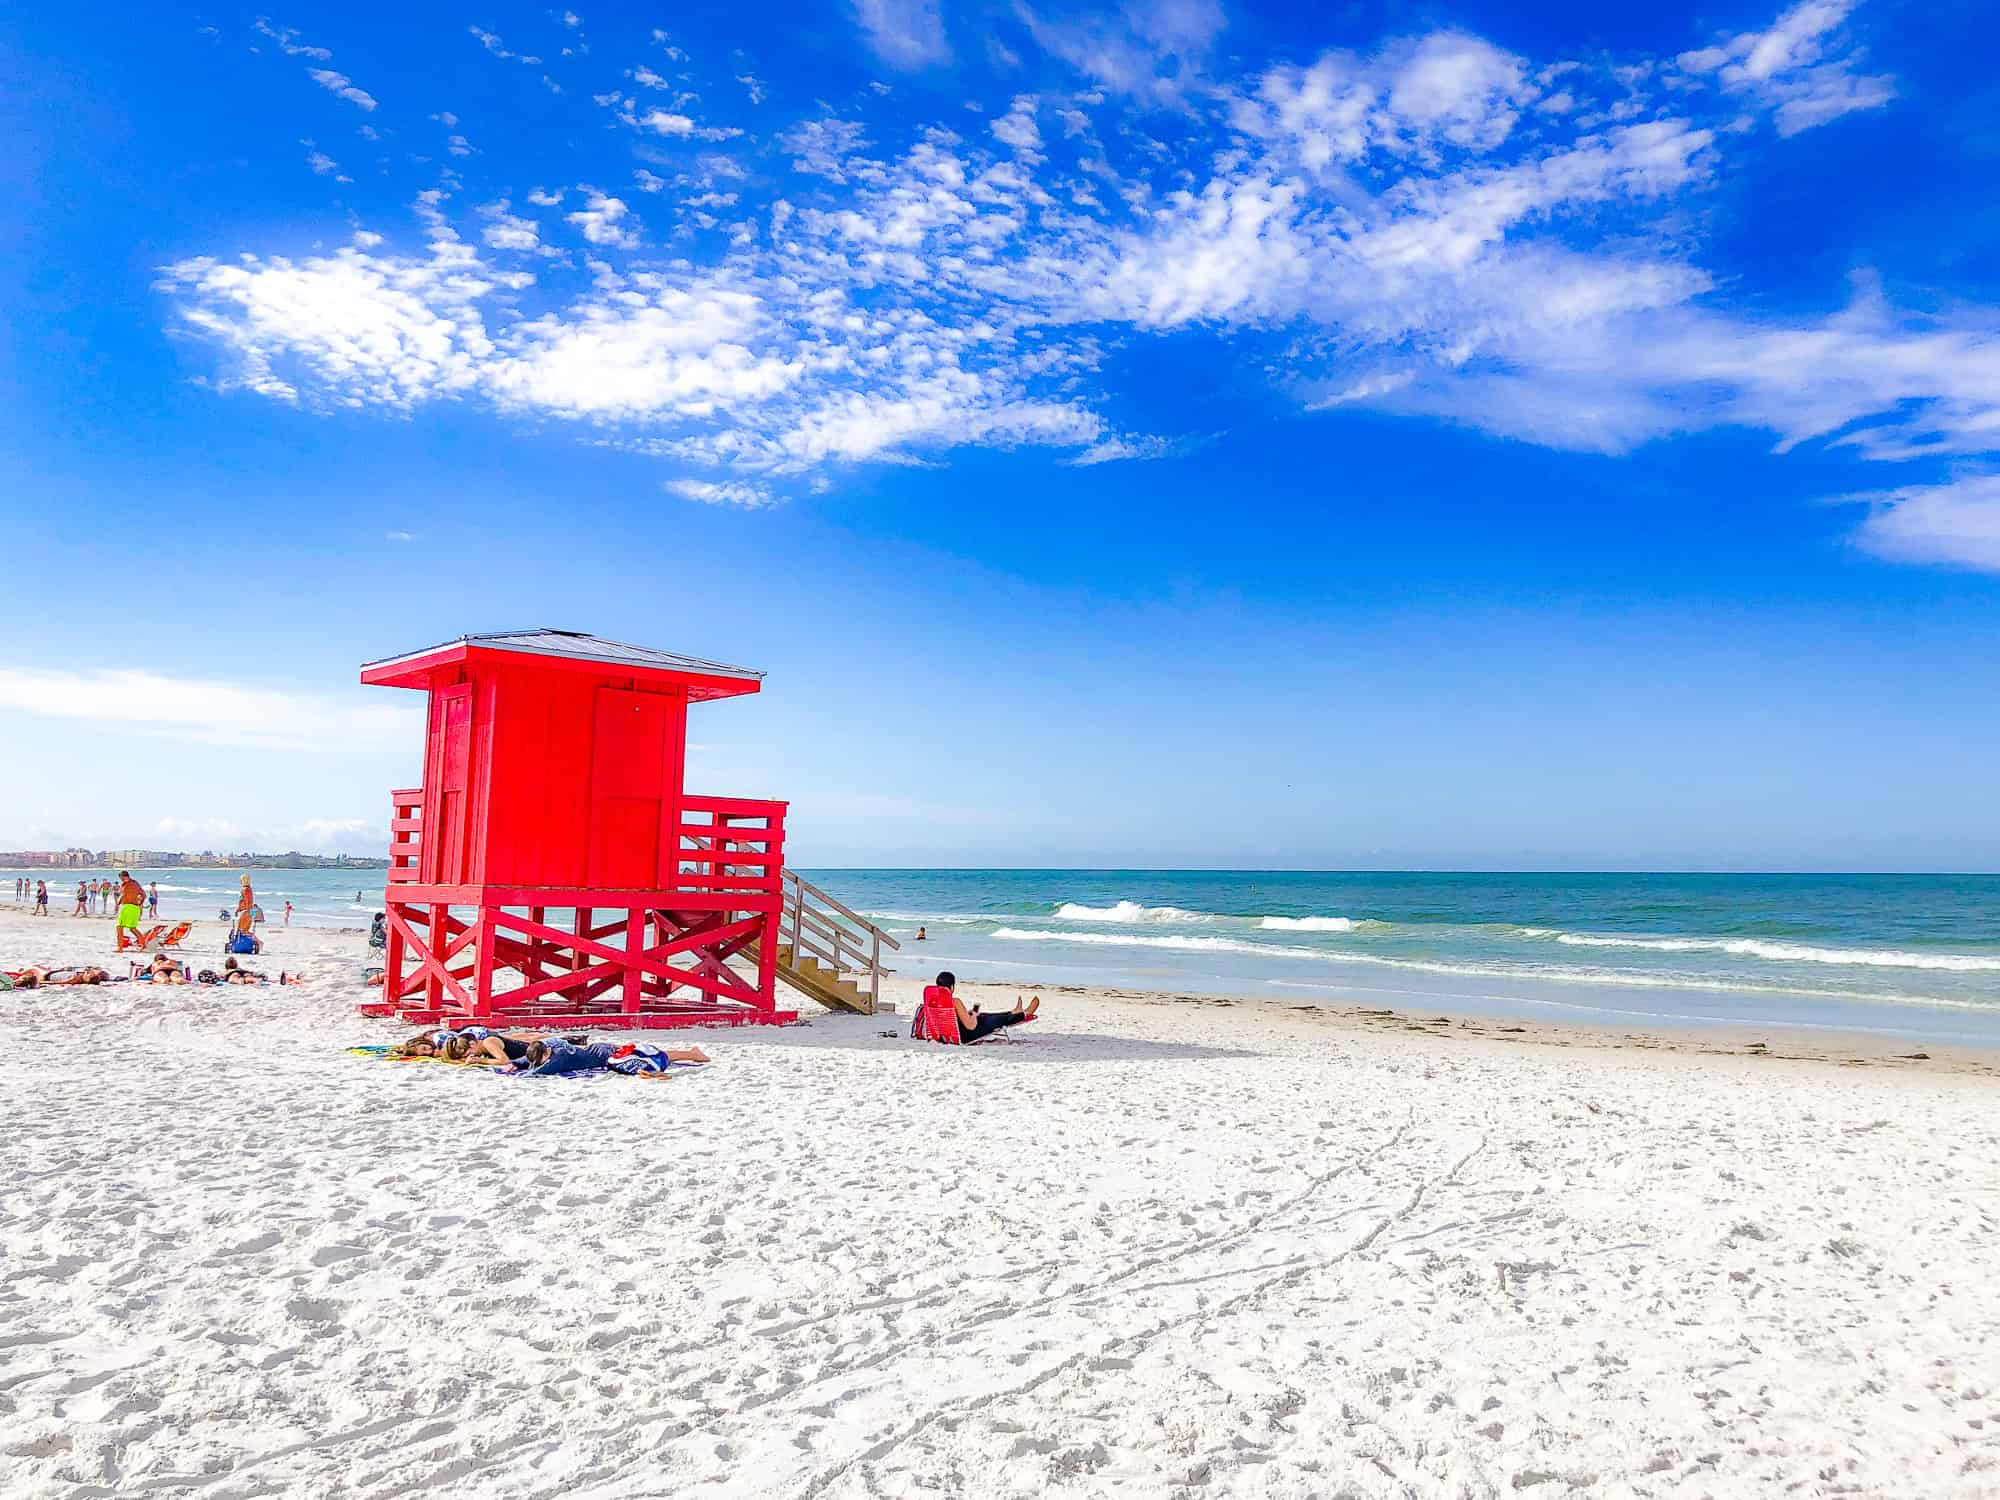 United States - Florida - Gulf Coast - Siesta Key Beach with Lifeguard Hut for West Coast Florida Road Trip Itinerary